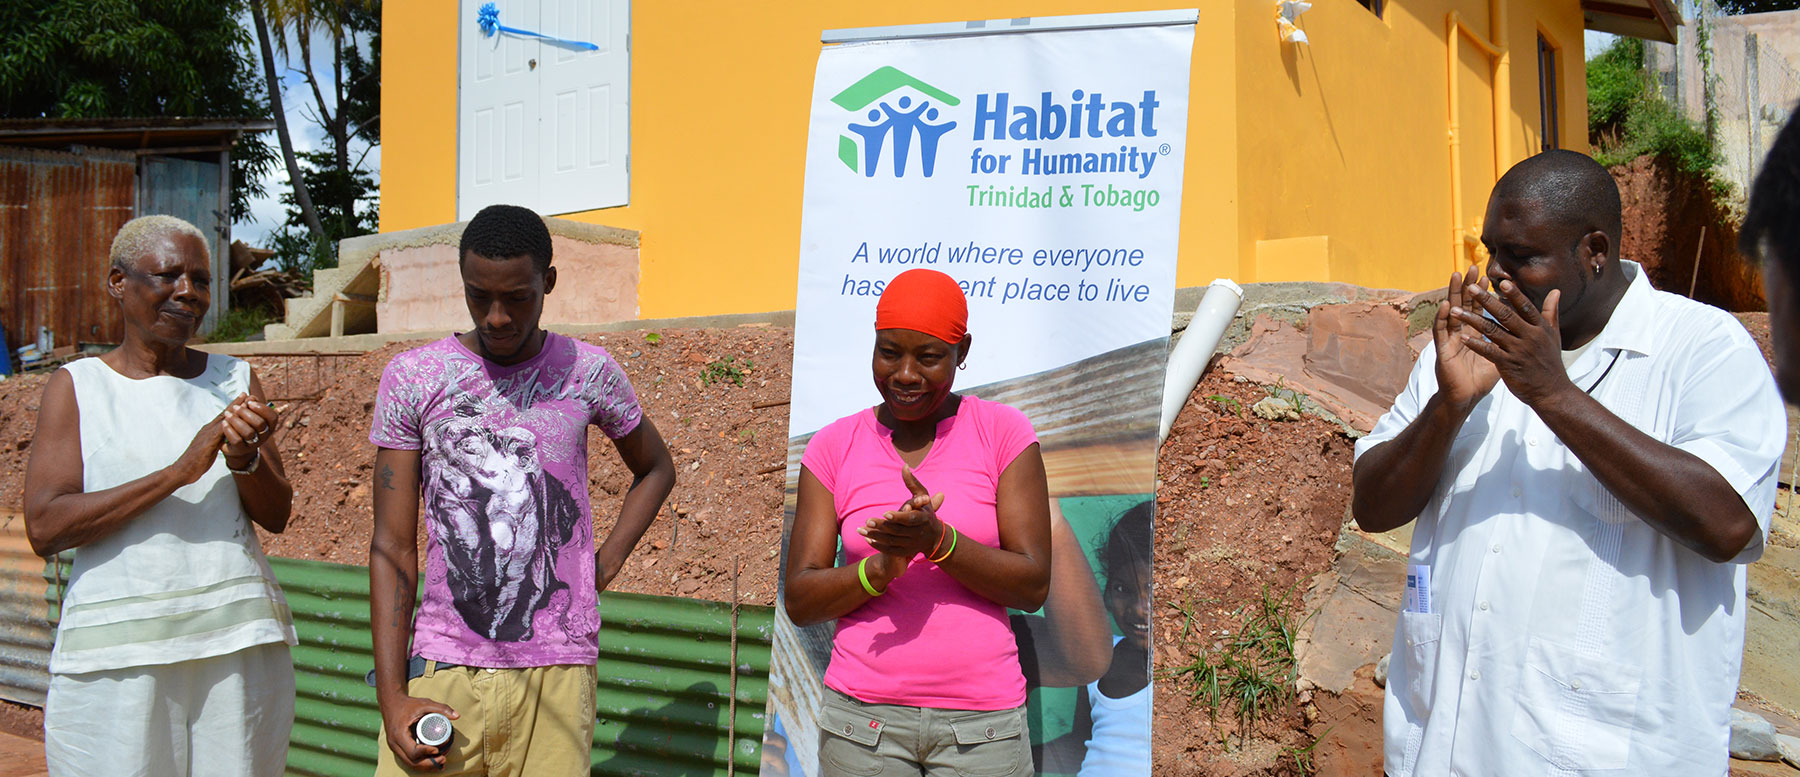 Homeowners And Communities Habitat For Humanity Trinidad Tobago